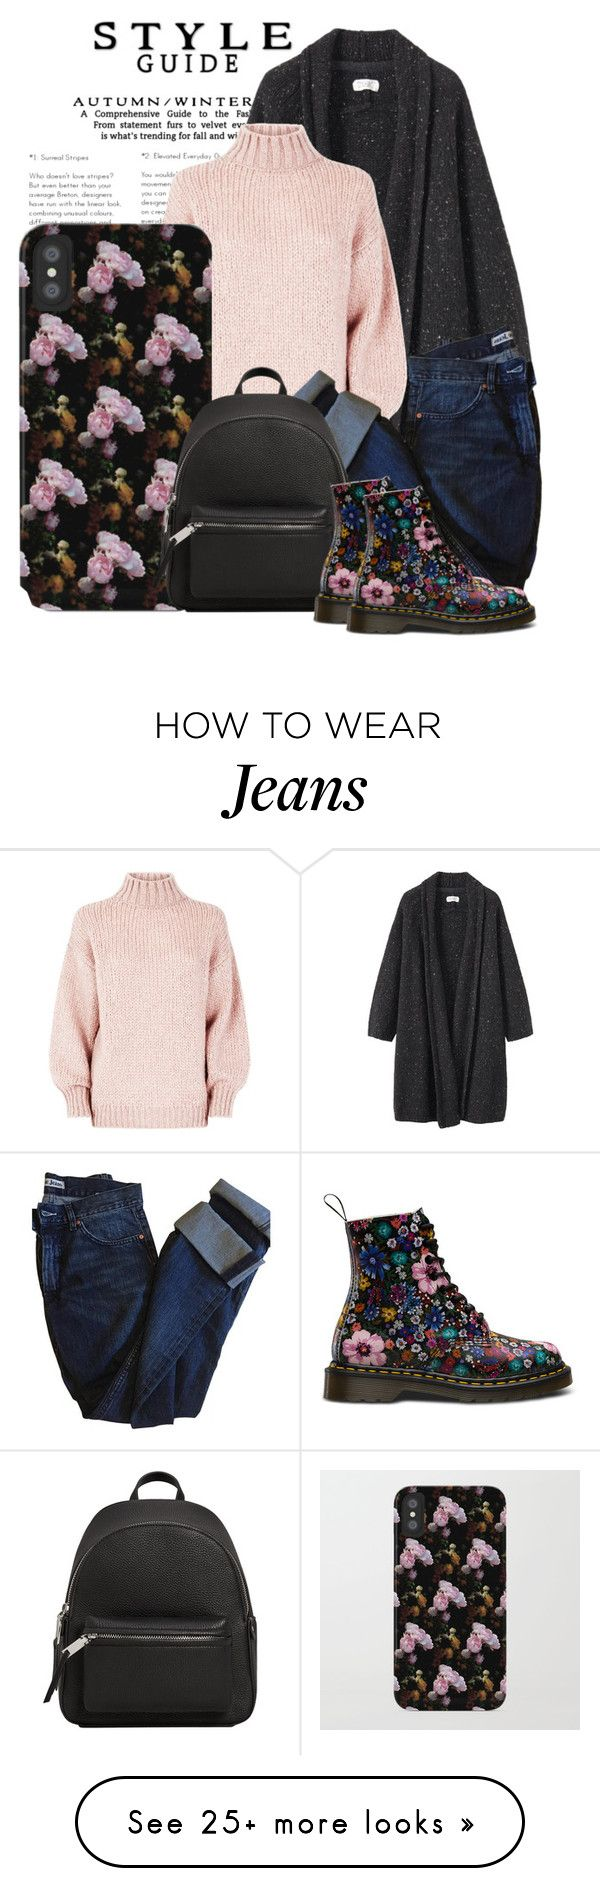 """""""Get The Look: Floral Combat Boots"""" by artbyjwp on Polyvore featuring Toast, Acne Studios, MANGO and vintage"""